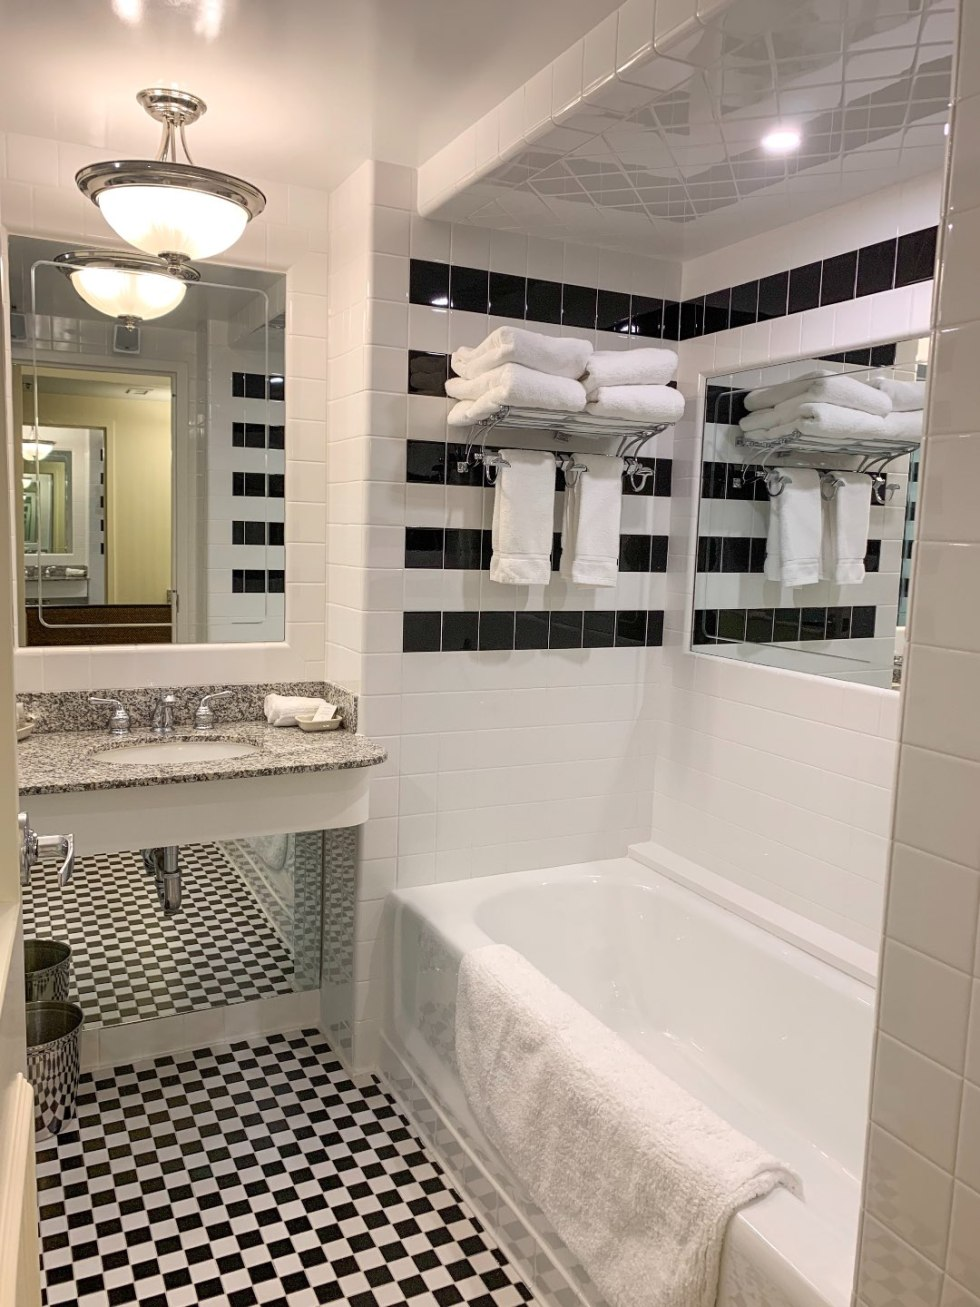 A Night at the O.Henry Hotel In Greensboro, NC - I'm Fixin' To - @mbg0112 | A Night at the O.Henry Hotel In Greensboro, NC by popular North Carolina blog, I'm fixin' To: image of a black and white tiled bathroom in a king room in the O. Henry Hotel.